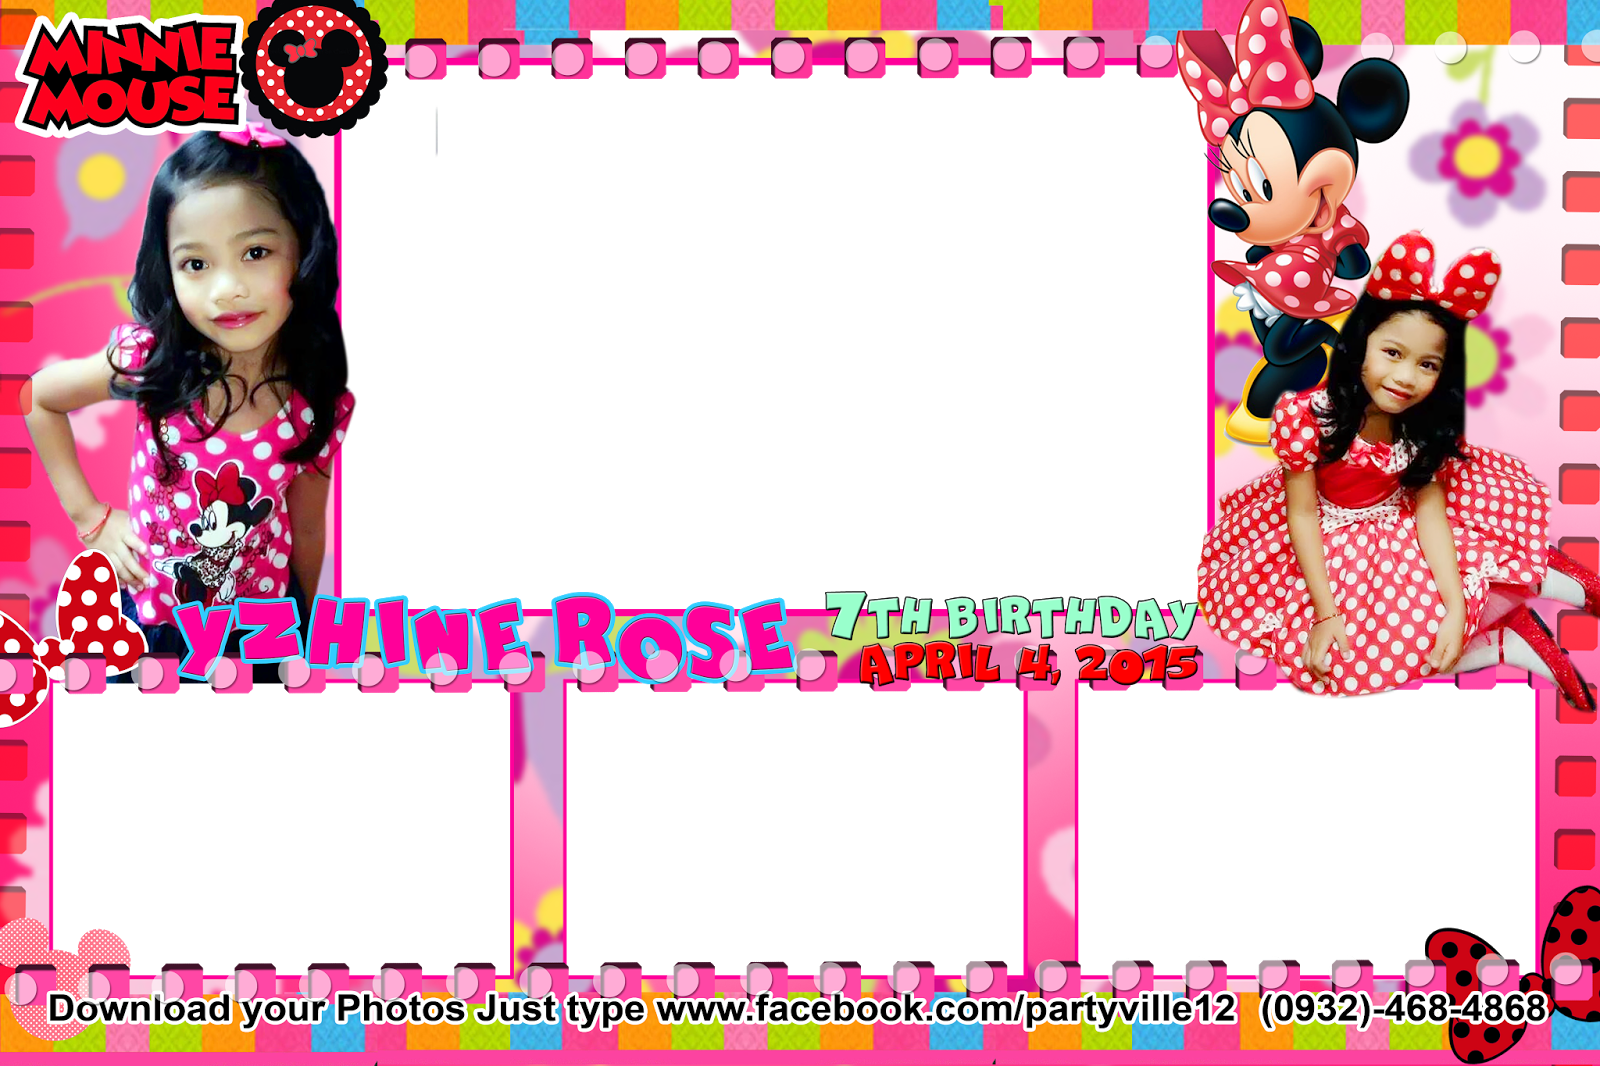 Minnie Mouse Photo Booth Template